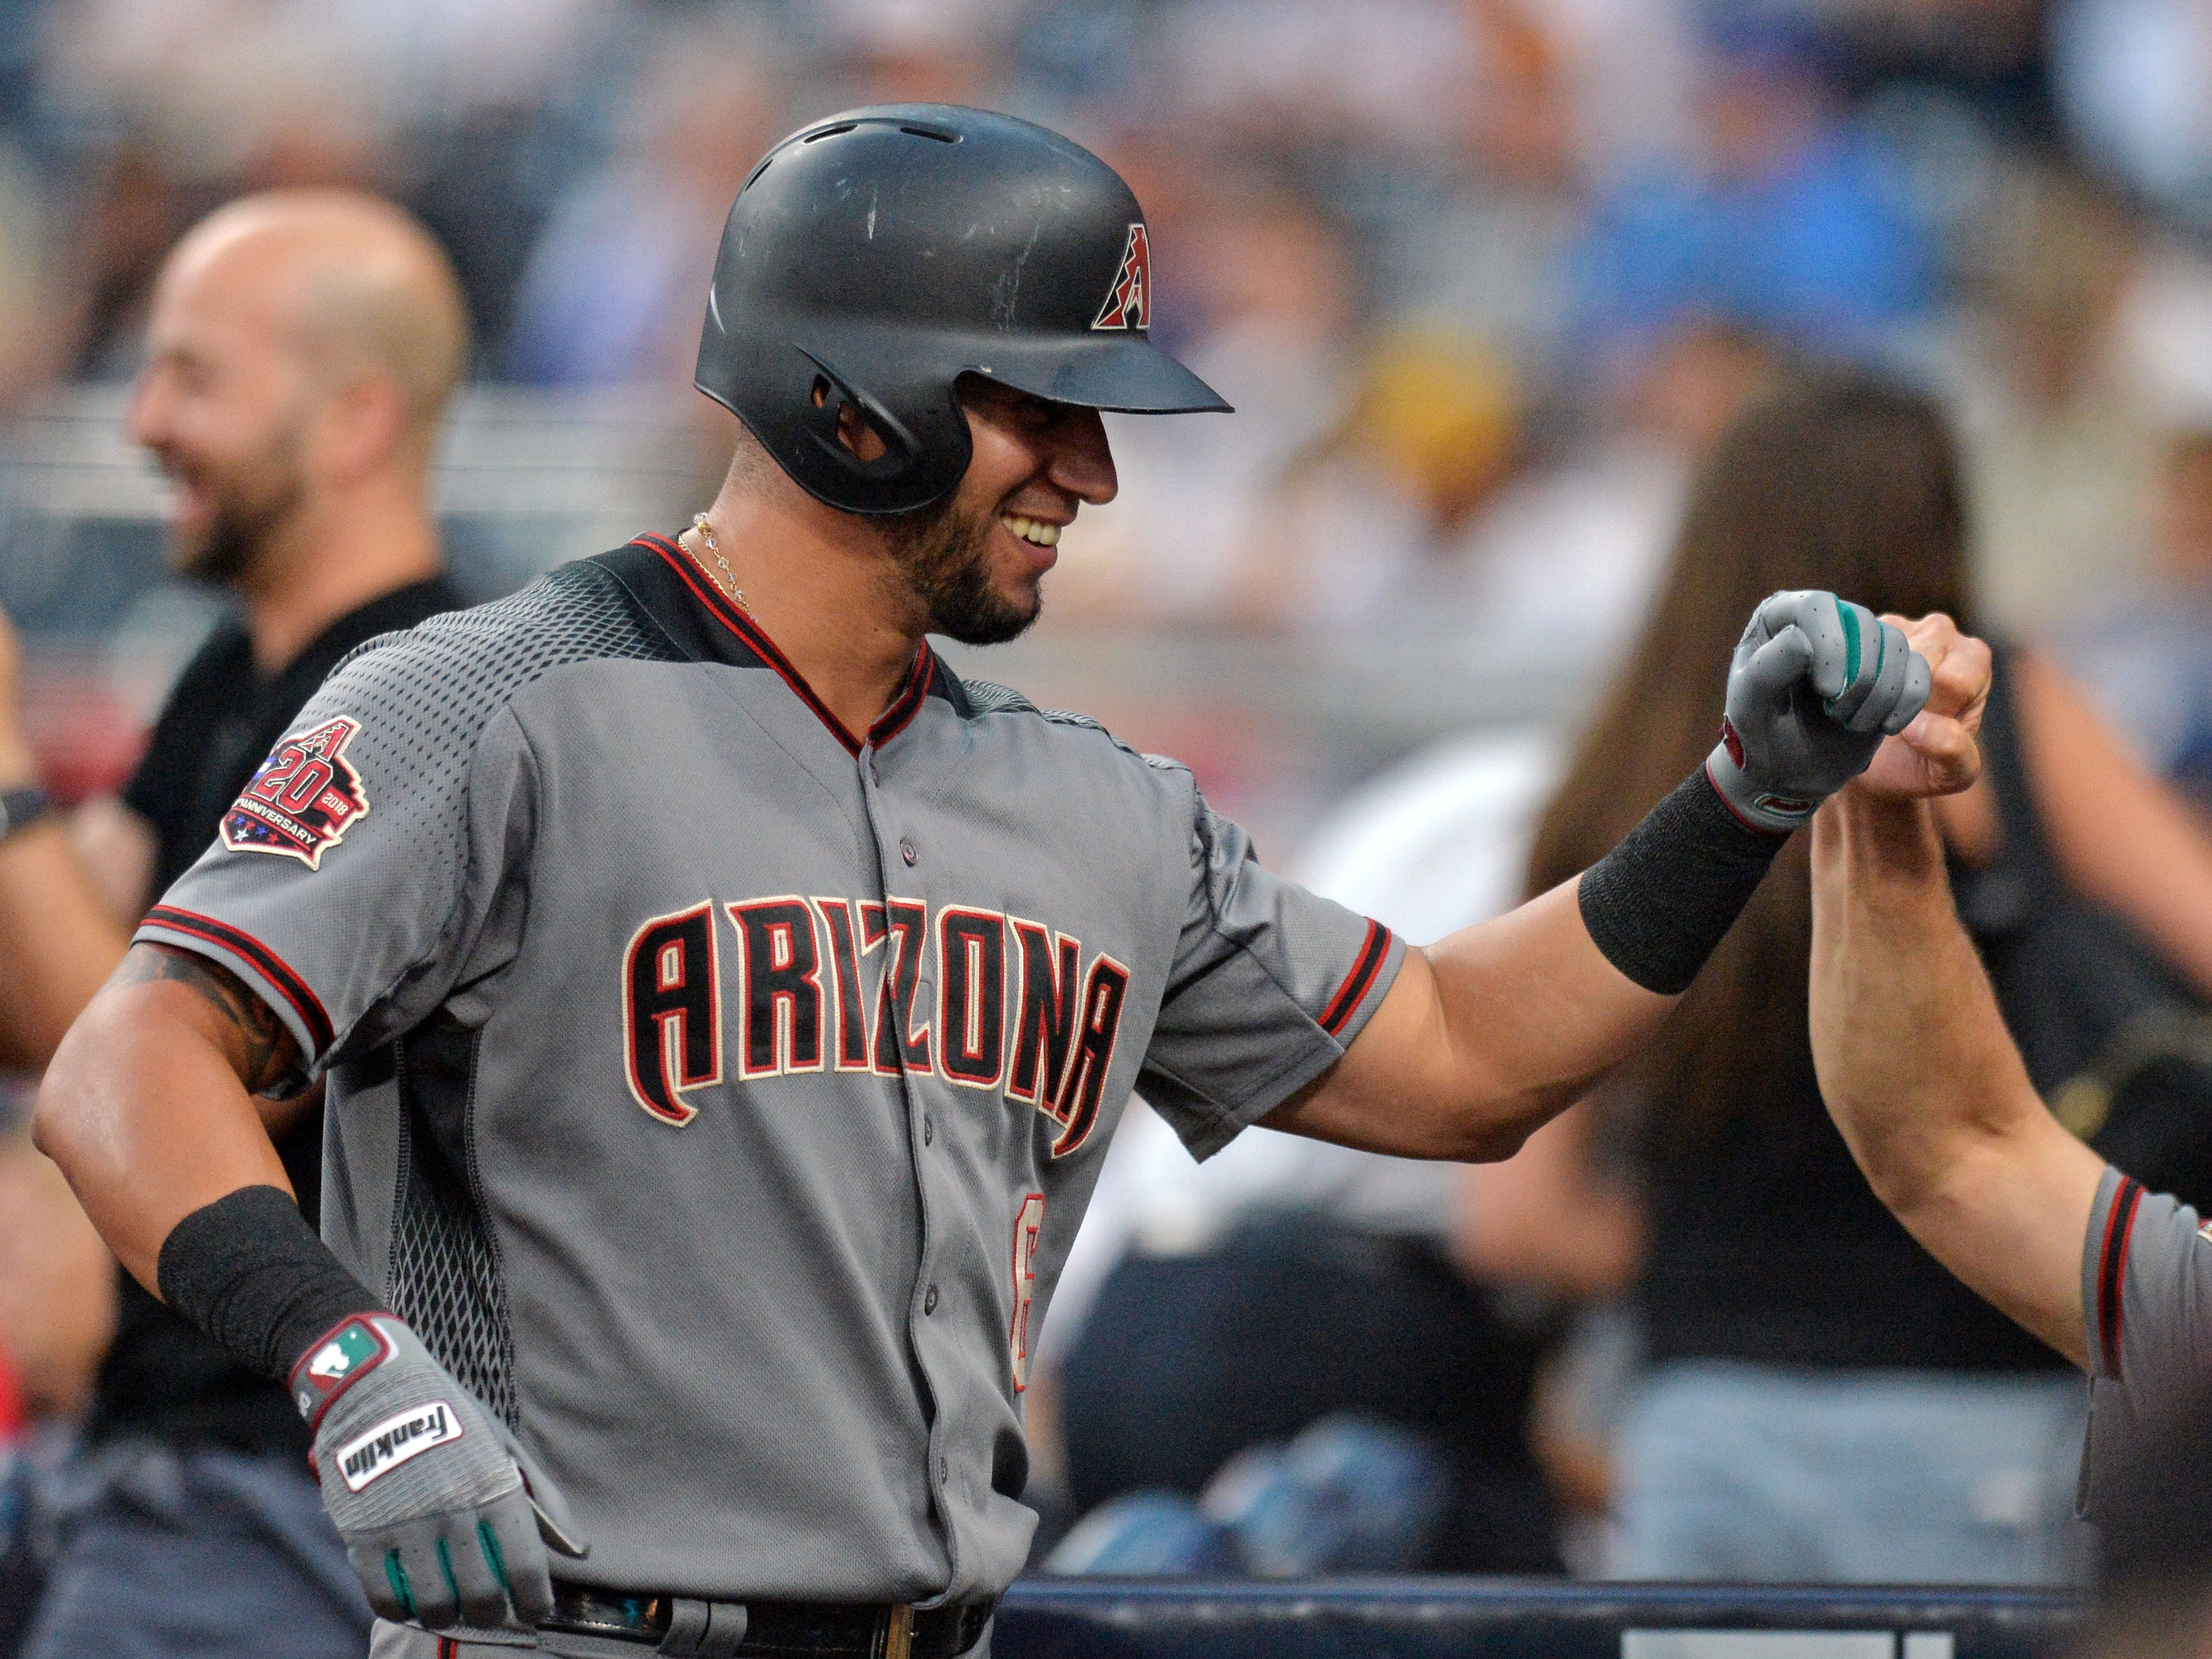 Aug 16, 2018; San Diego, CA, USA; Arizona Diamondbacks left fielder David Peralta (left) is congratulated by manager Torey Lovullo (far right) after hitting a three run home run during the first inning against the San Diego Padres at Petco Park.